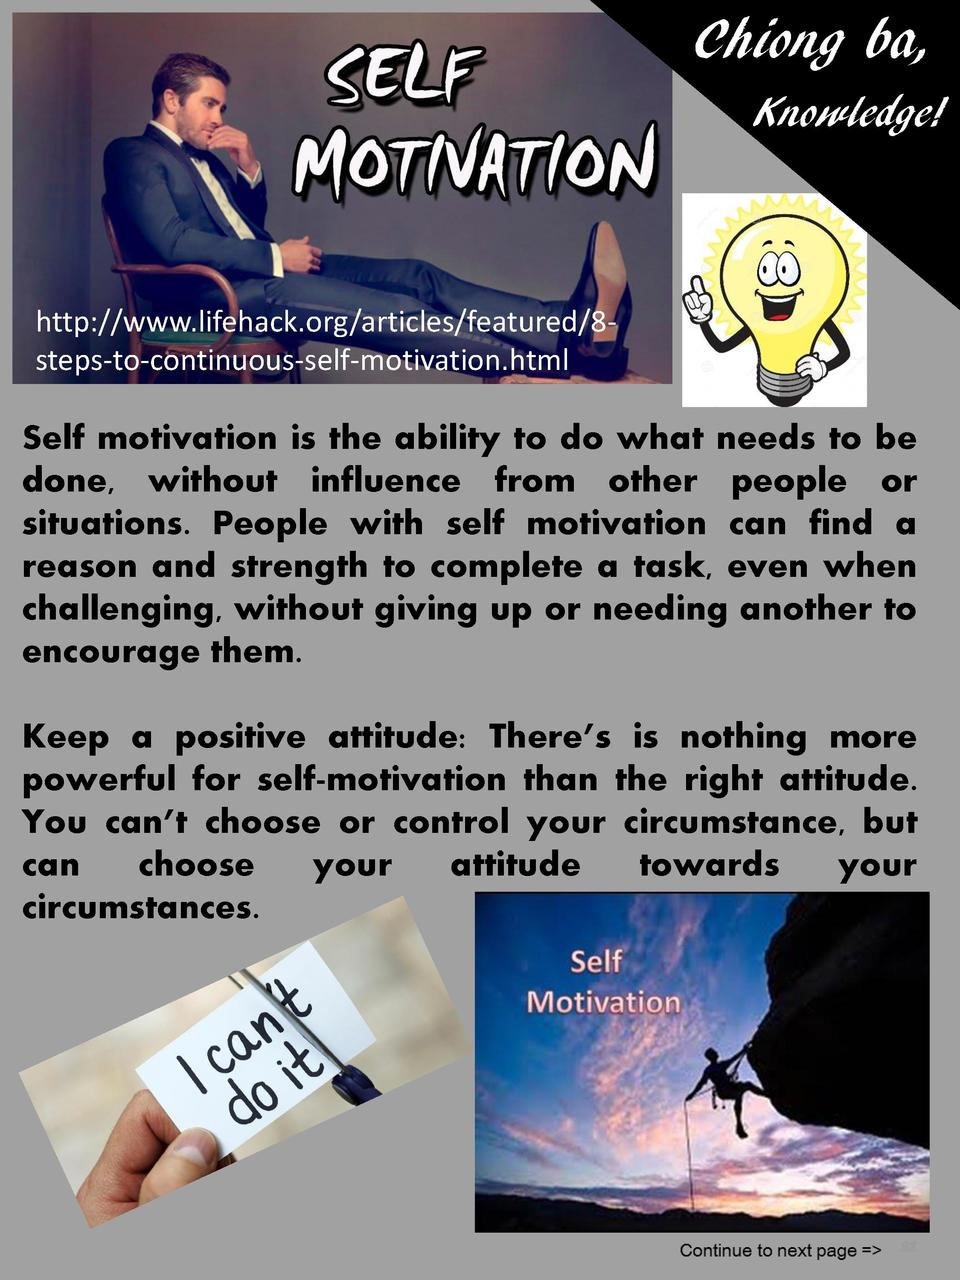 Chiong ba, Knowledge   http   www.lifehack.org articles featured 8steps-to-continuous-self-motivation.html  Self motivatio...